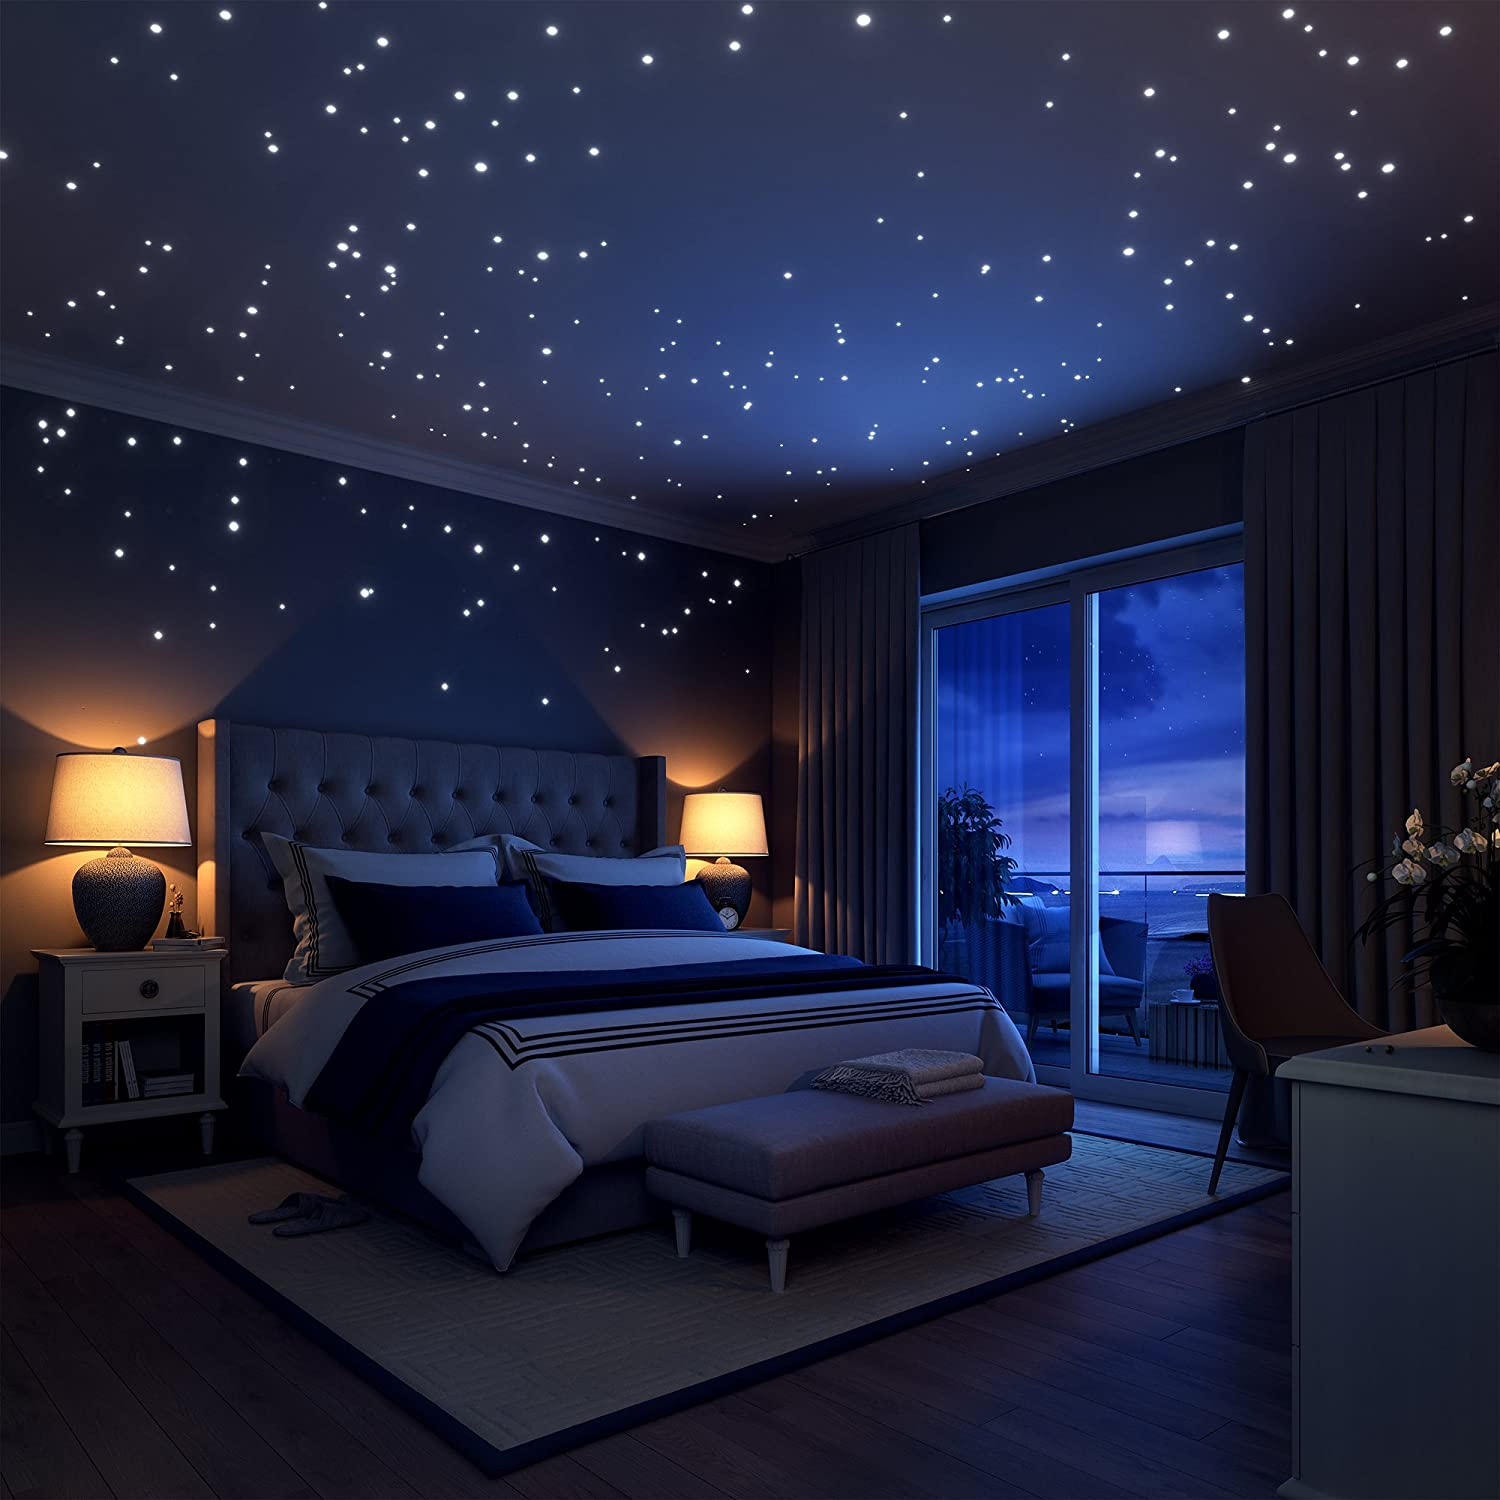 Glow In The Dark Stars Wall Stickers,252 Adhesive Dots And Moon For Starry  Sky